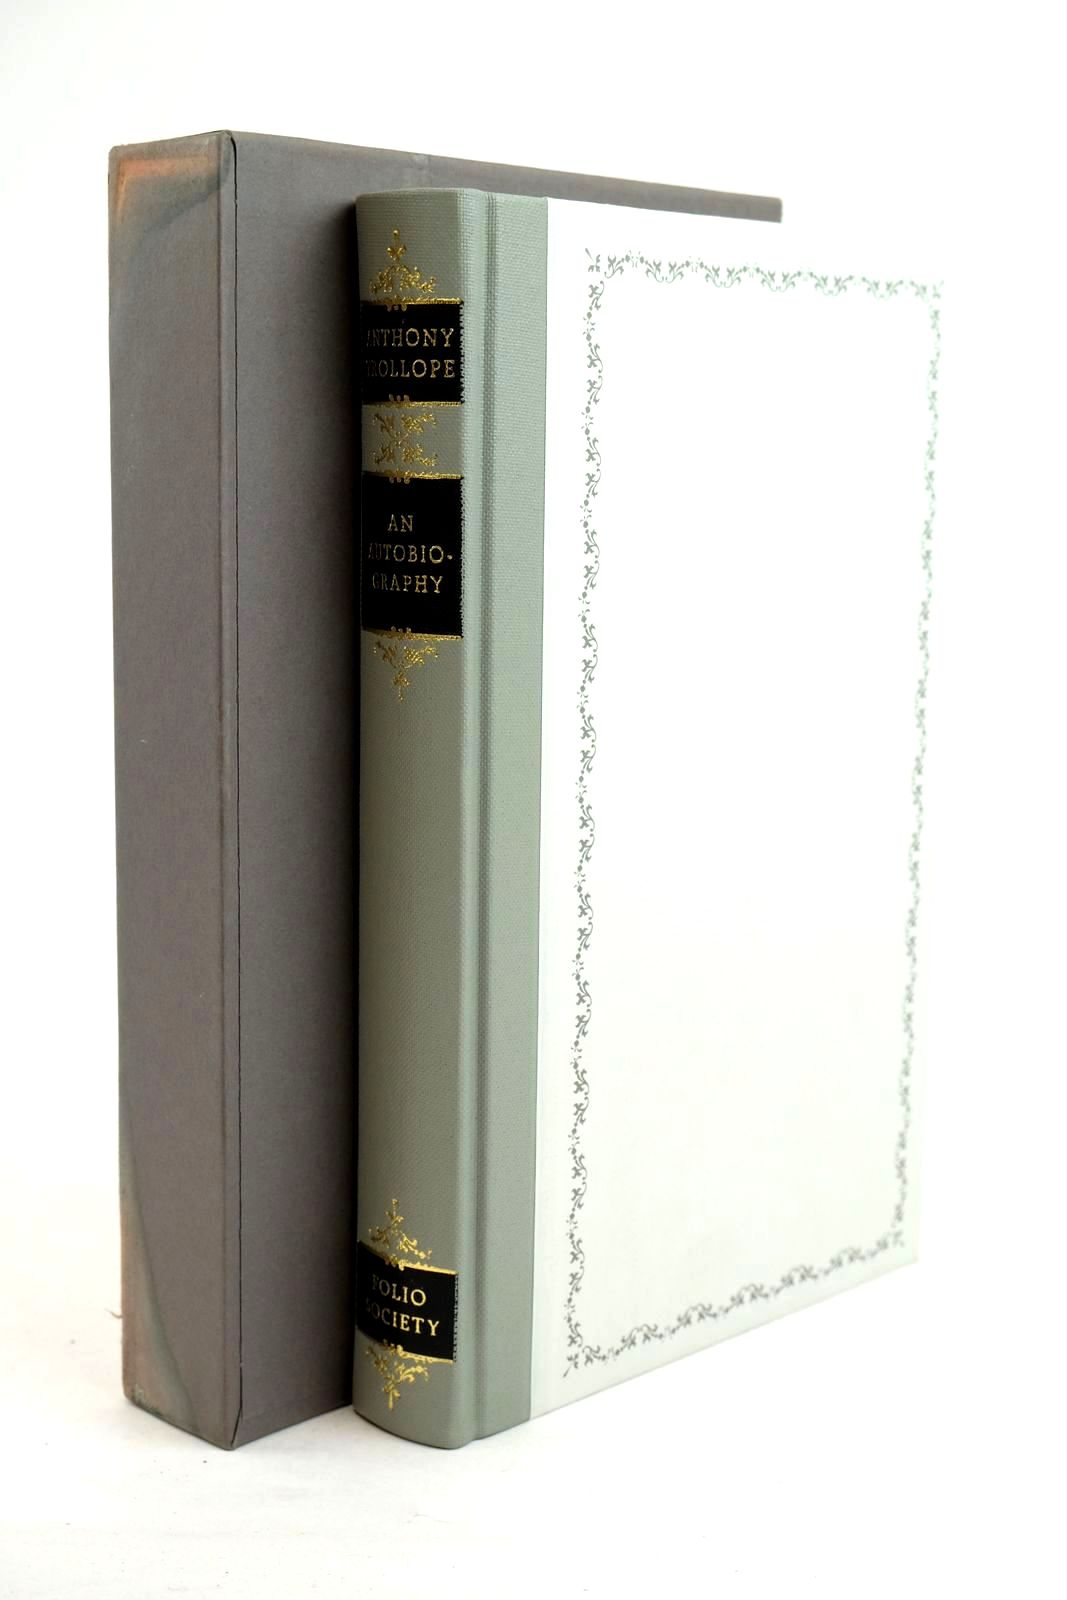 Photo of AN AUTOBIOGRAPHY written by Trollope, Anthony Sutherland, John published by Folio Society (STOCK CODE: 1320470)  for sale by Stella & Rose's Books